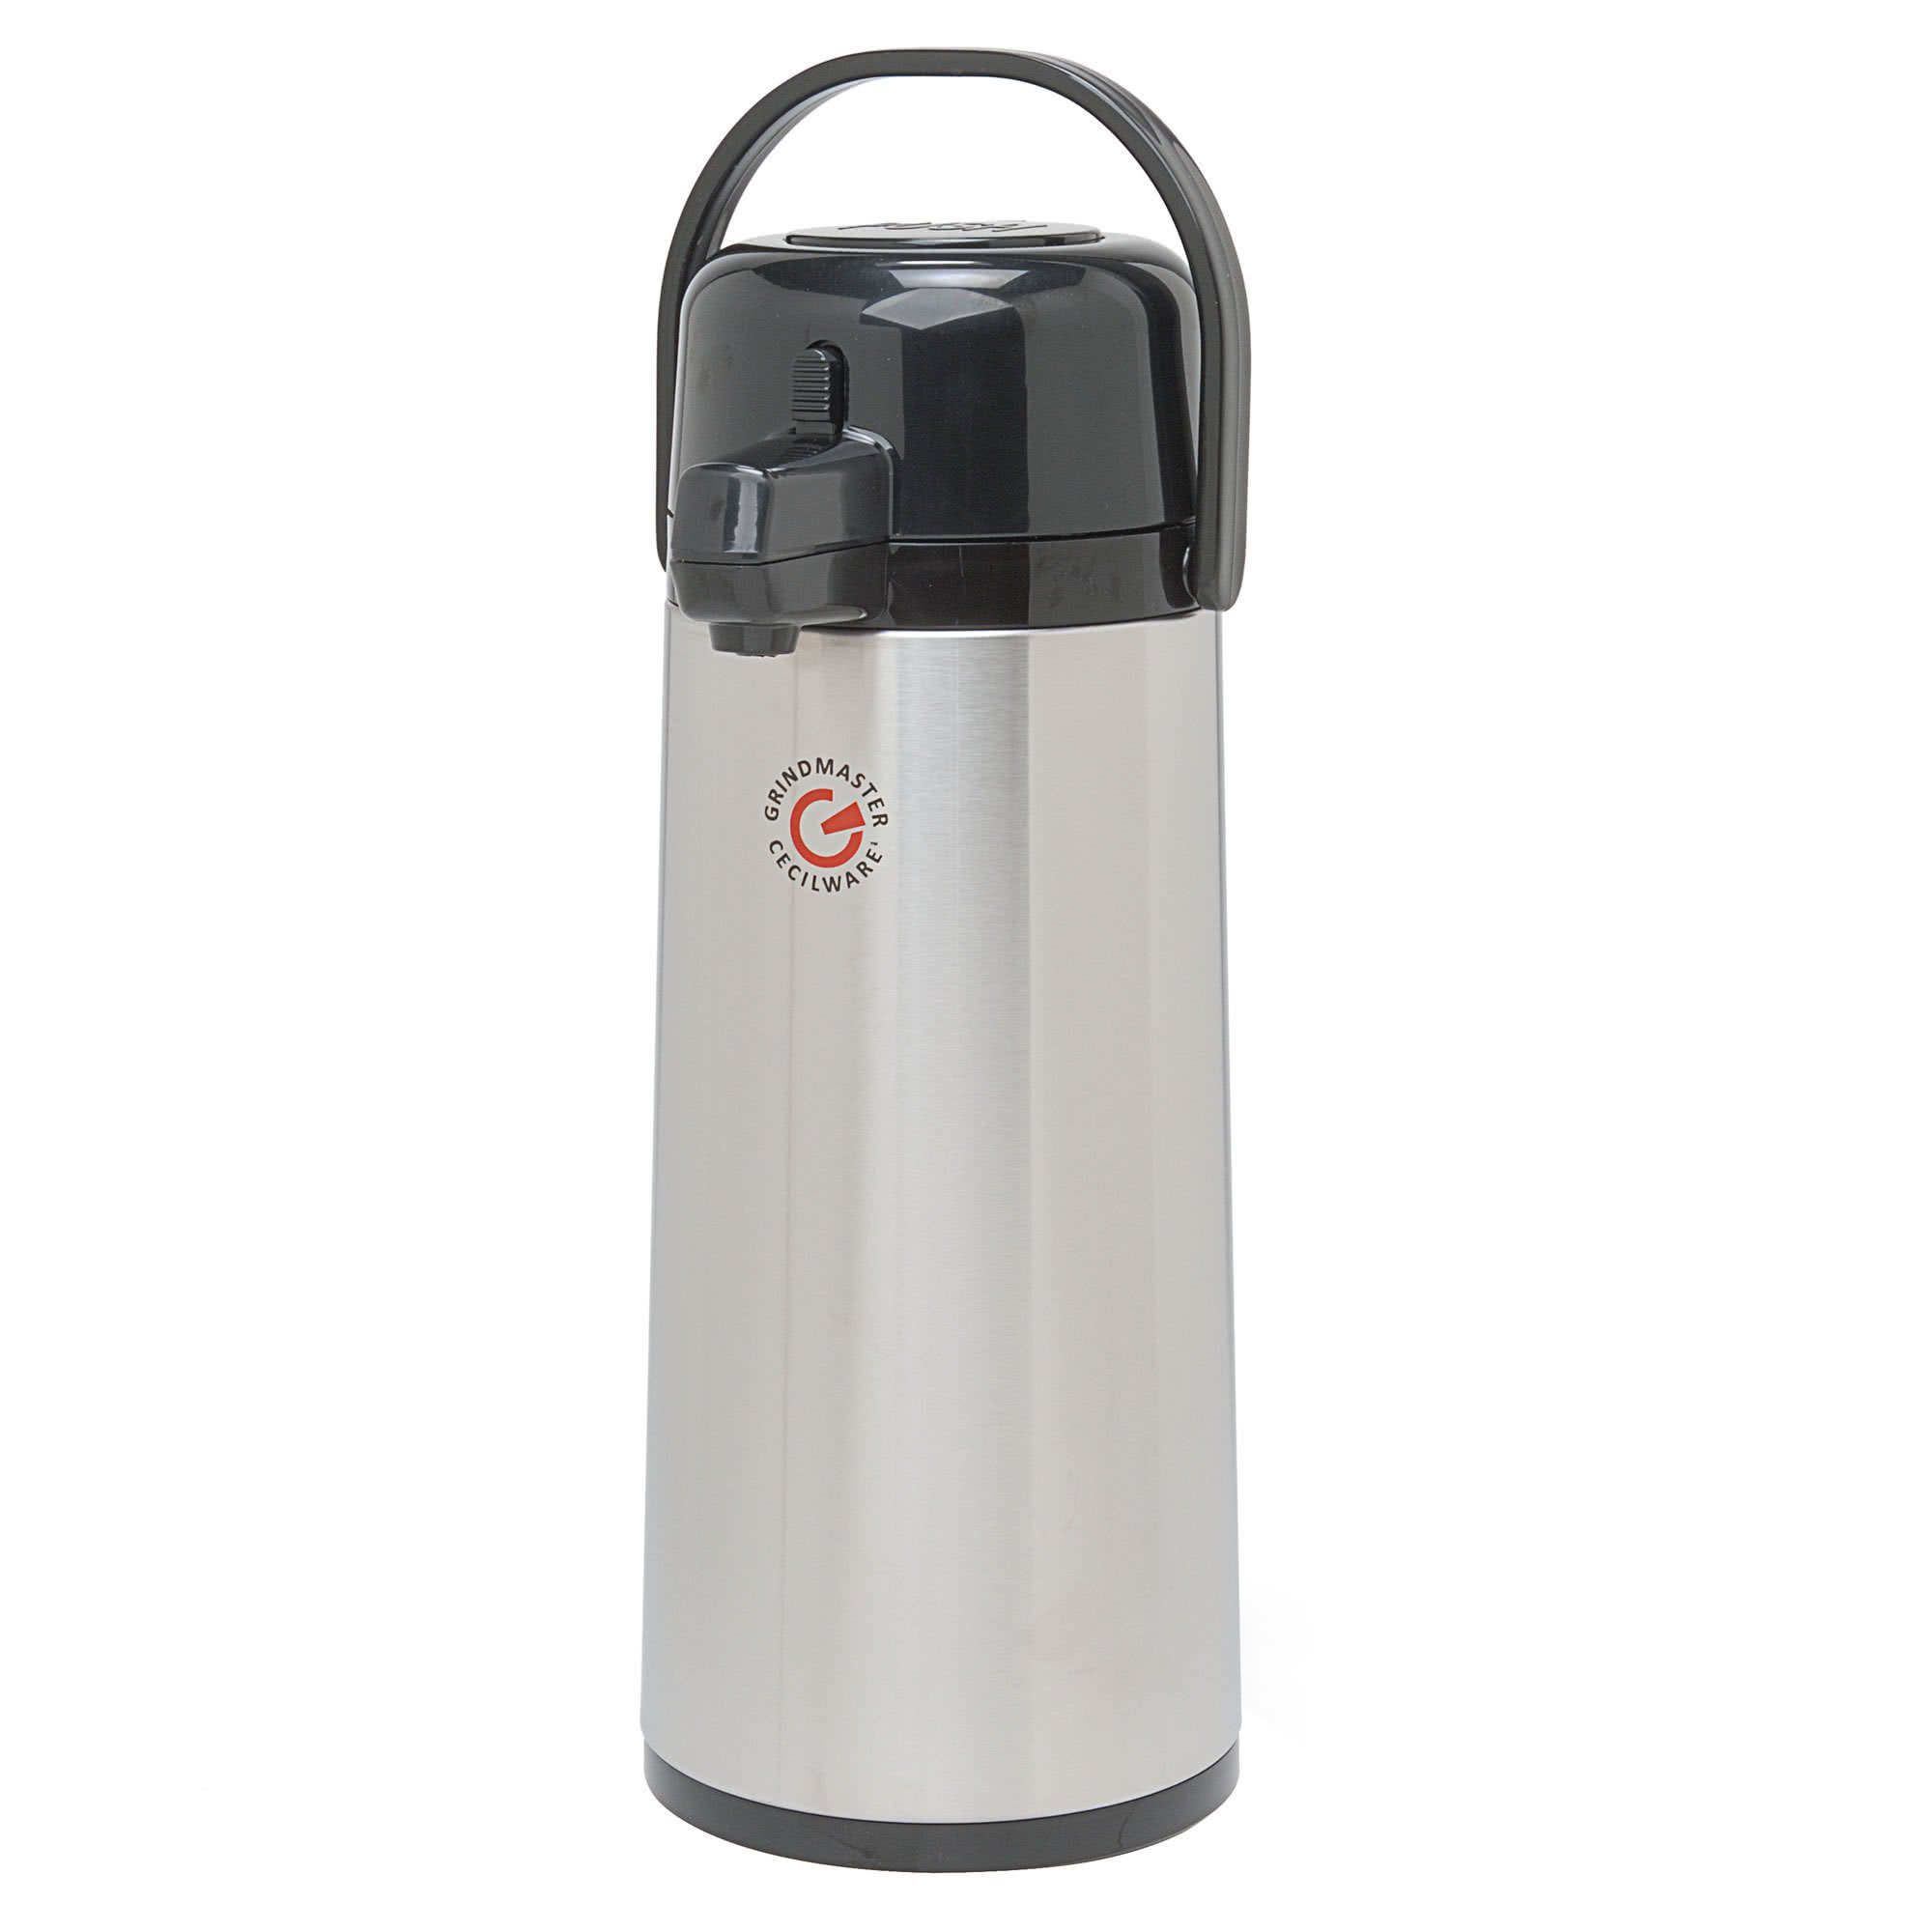 TableTop King 70768-C 2.2 Liter Glass Lined Airpot with Push Button - 6/Case